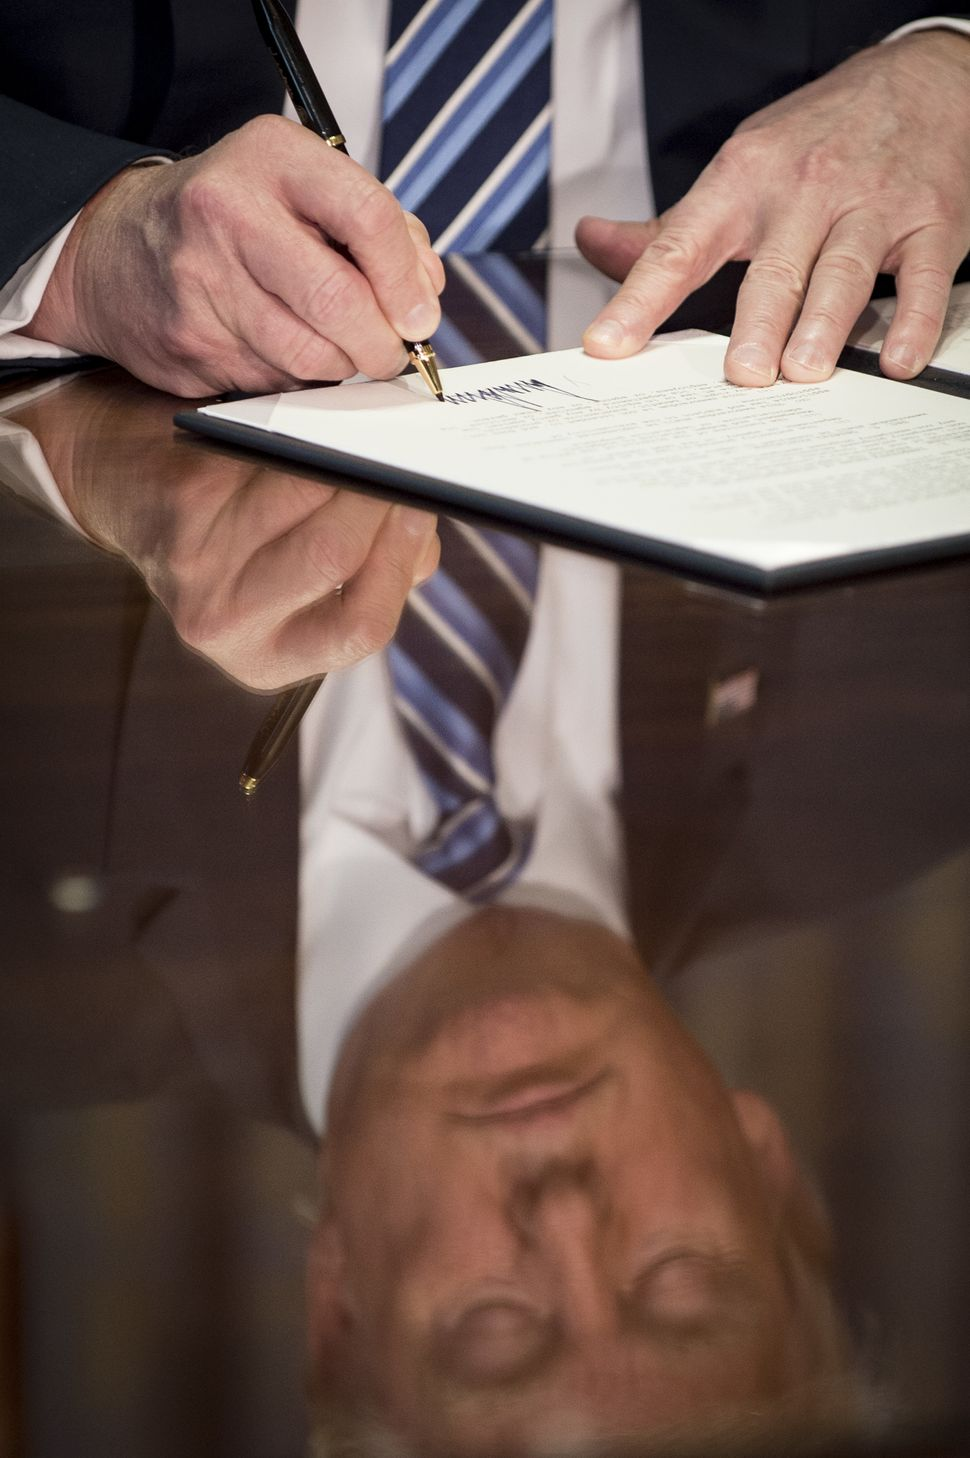 Trump signs an executive order on financial reform in Washington, D.C., on April 21, 2017.